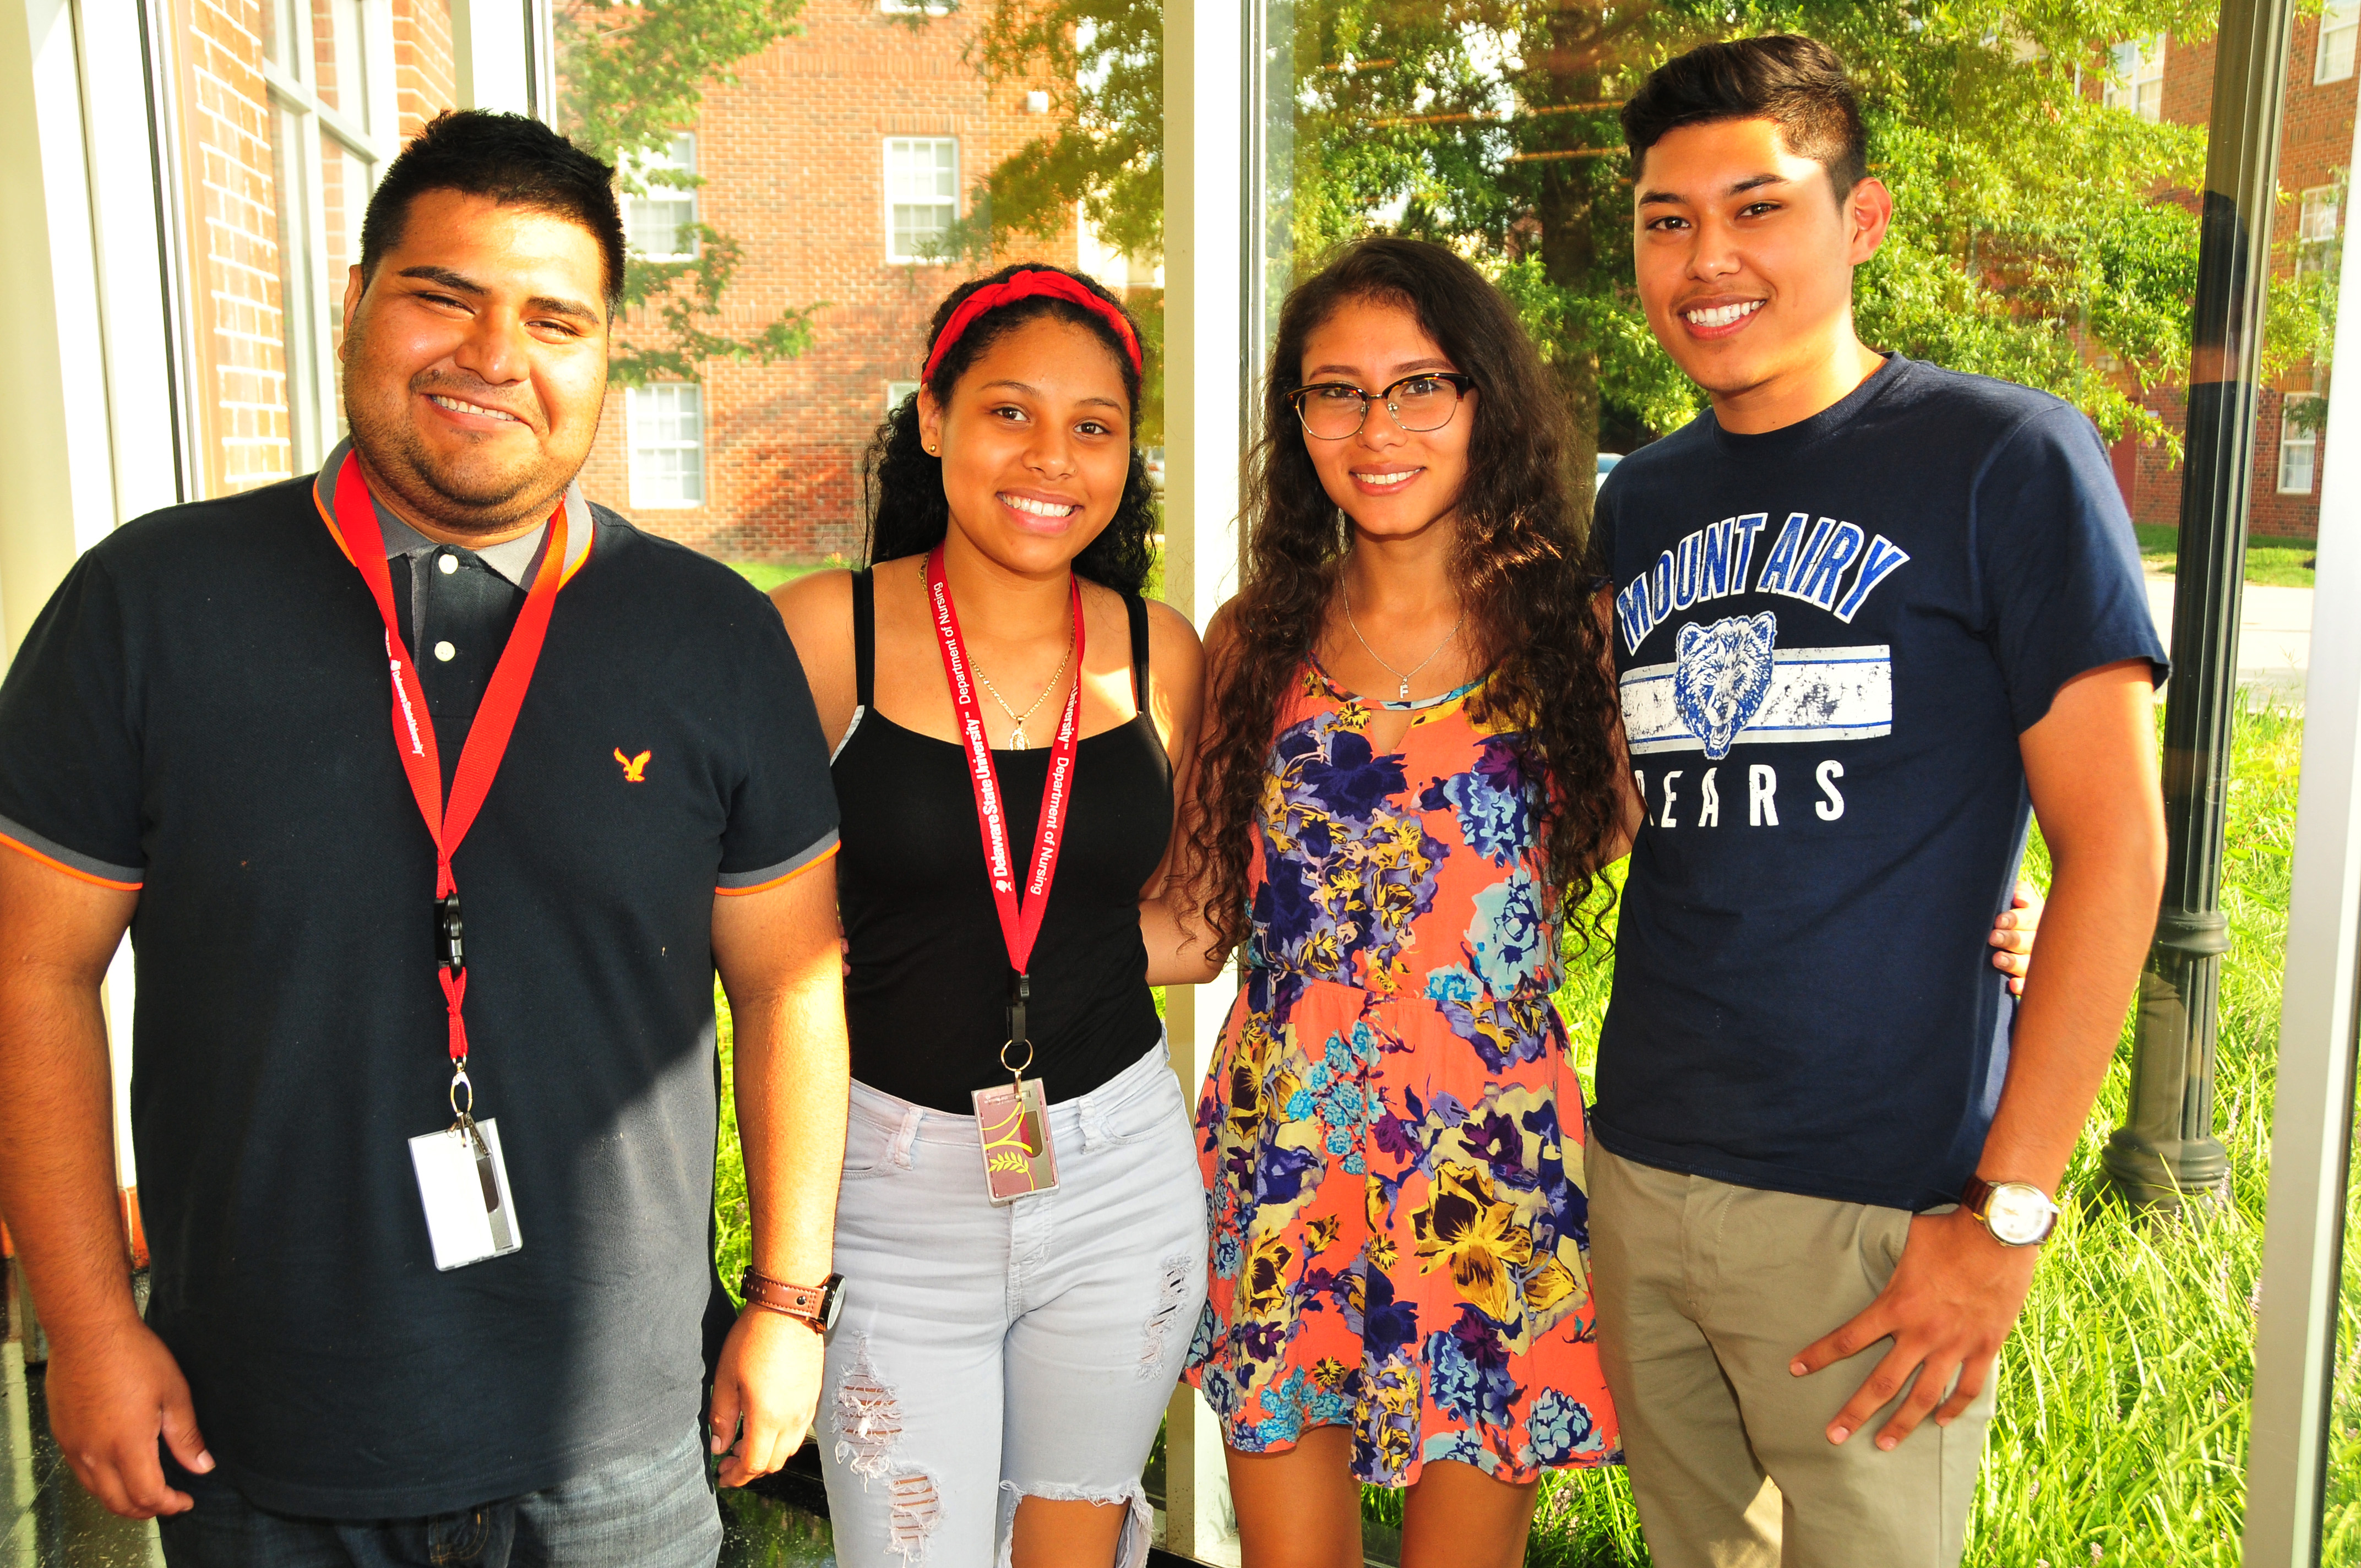 (L-r) Sergio Ramirez, Itzel Serrano, Maria Fernanda Lima and Dilan Lozano are all academic high achievers.